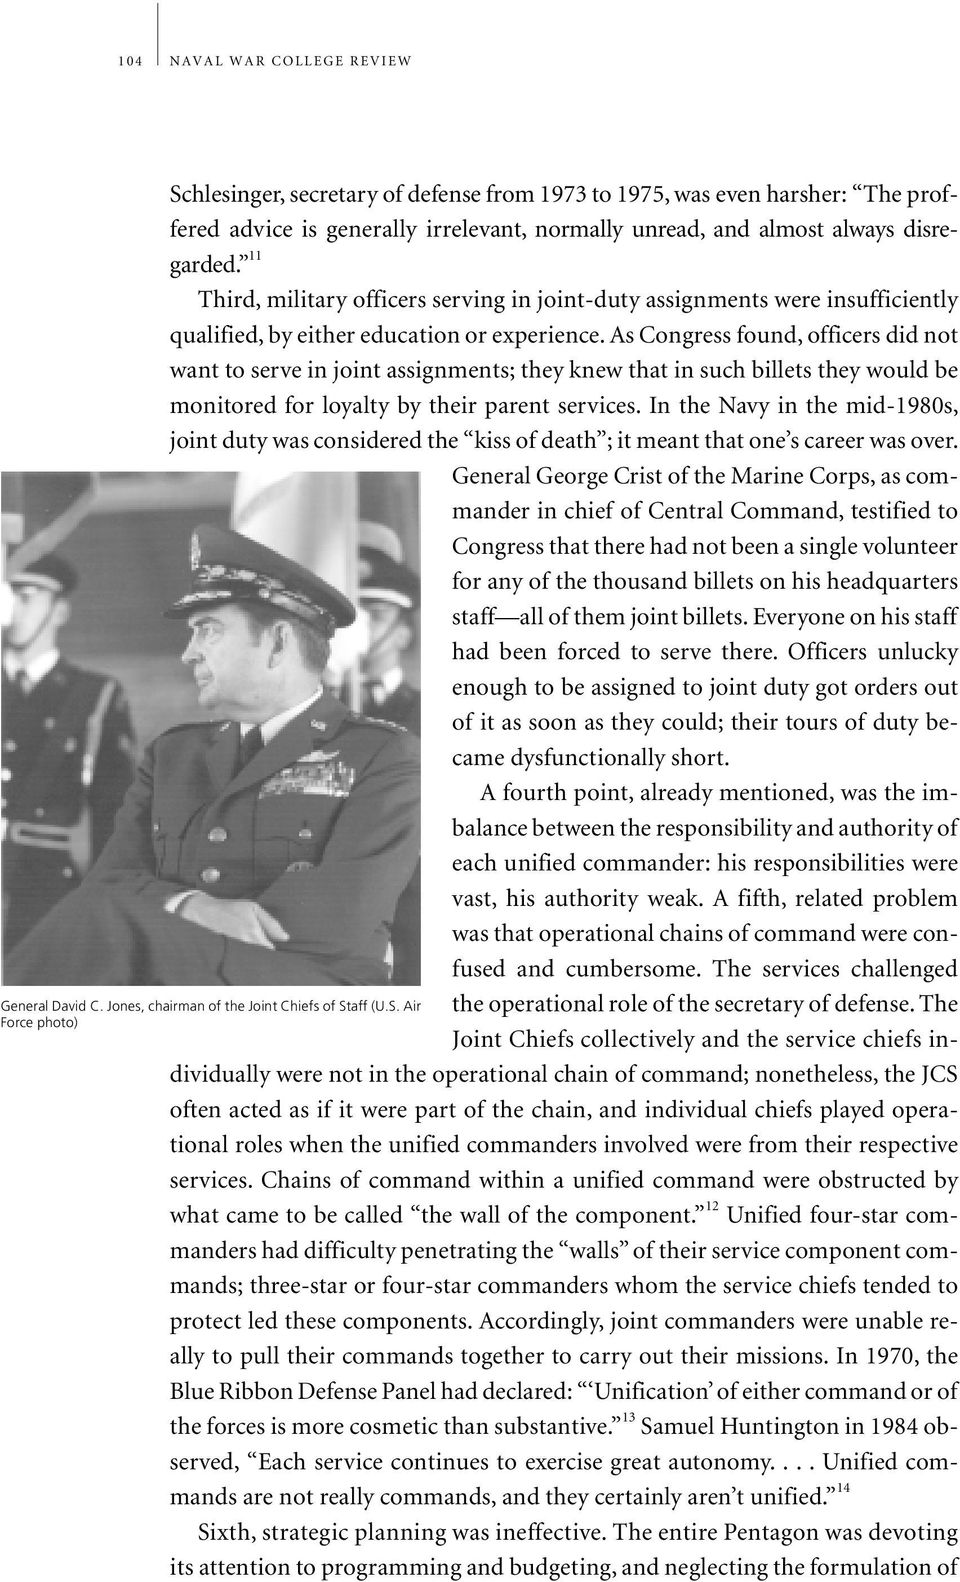 As Congress found, officers did not want to serve in joint assignments; they knew that in such billets they would be monitored for loyalty by their parent services.